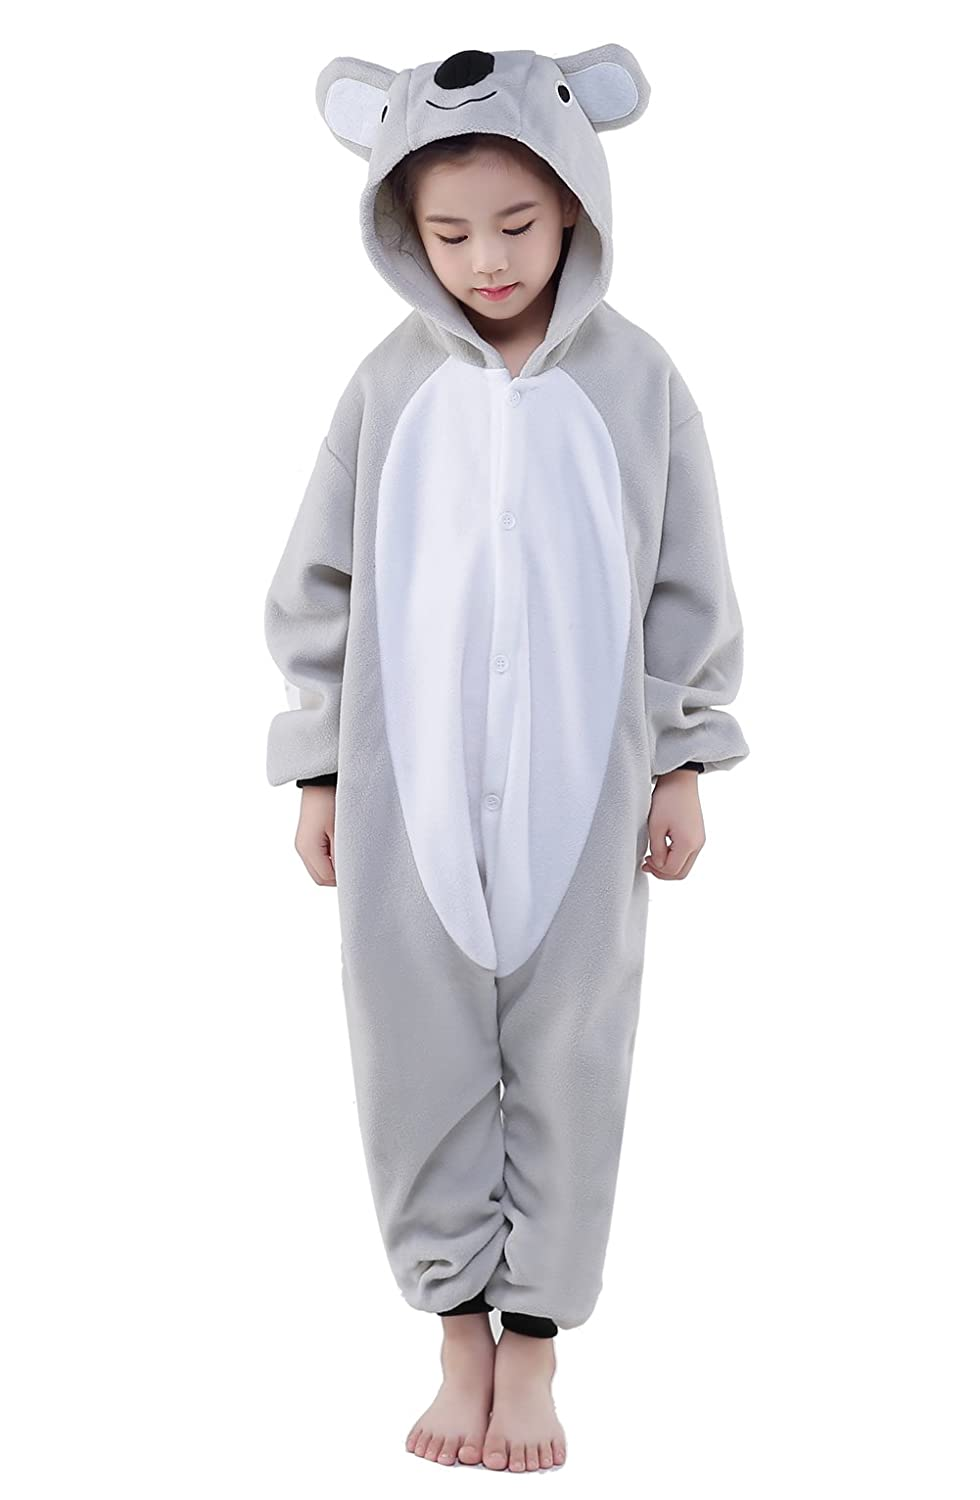 Onesie World Unisex Animal Pyjamas - Koala Kids (Cosplay / Nightwear Halloween Carnival Novelty